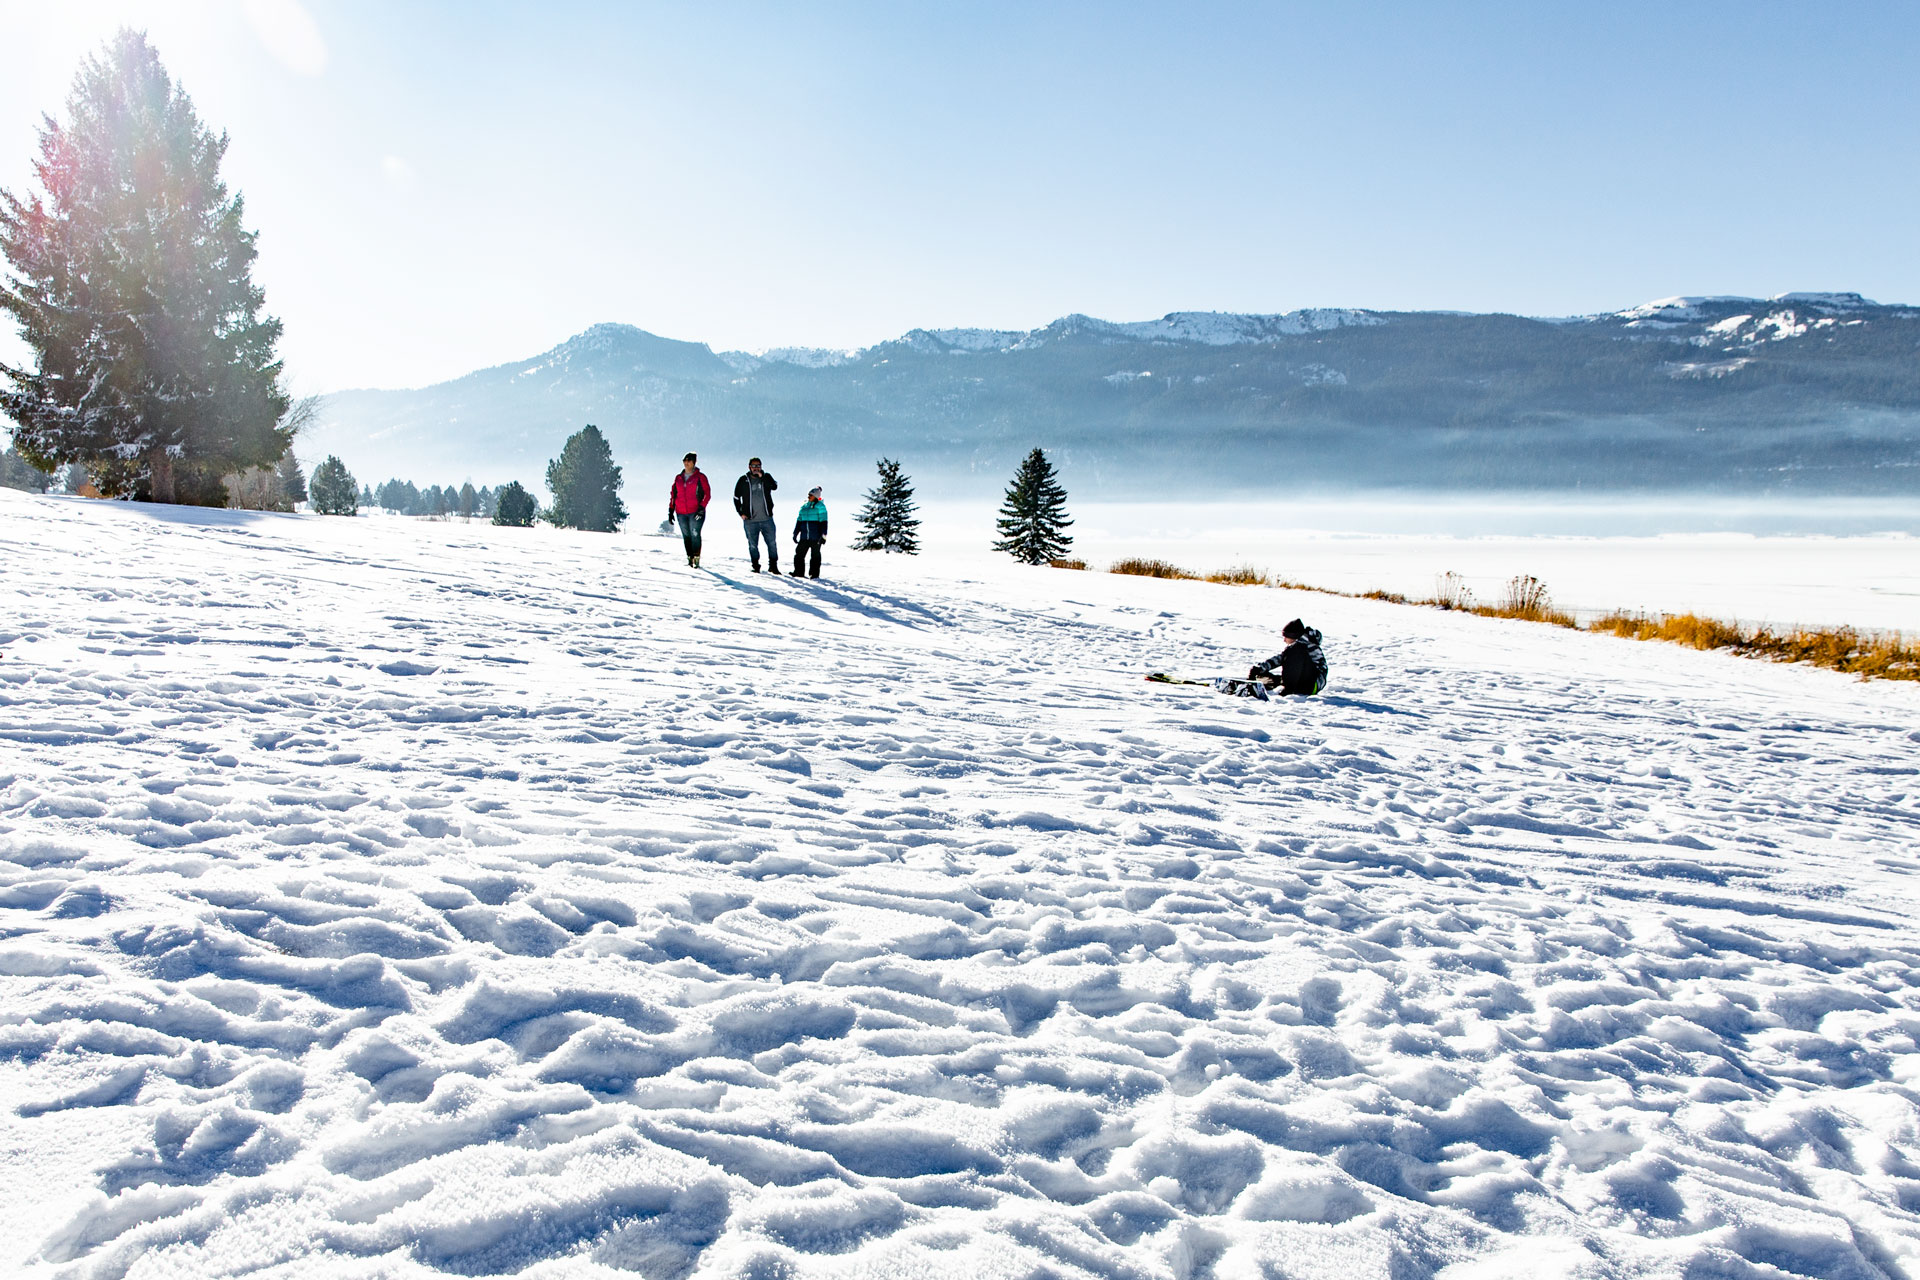 family of four hanging out around the lake in the snow while sledding